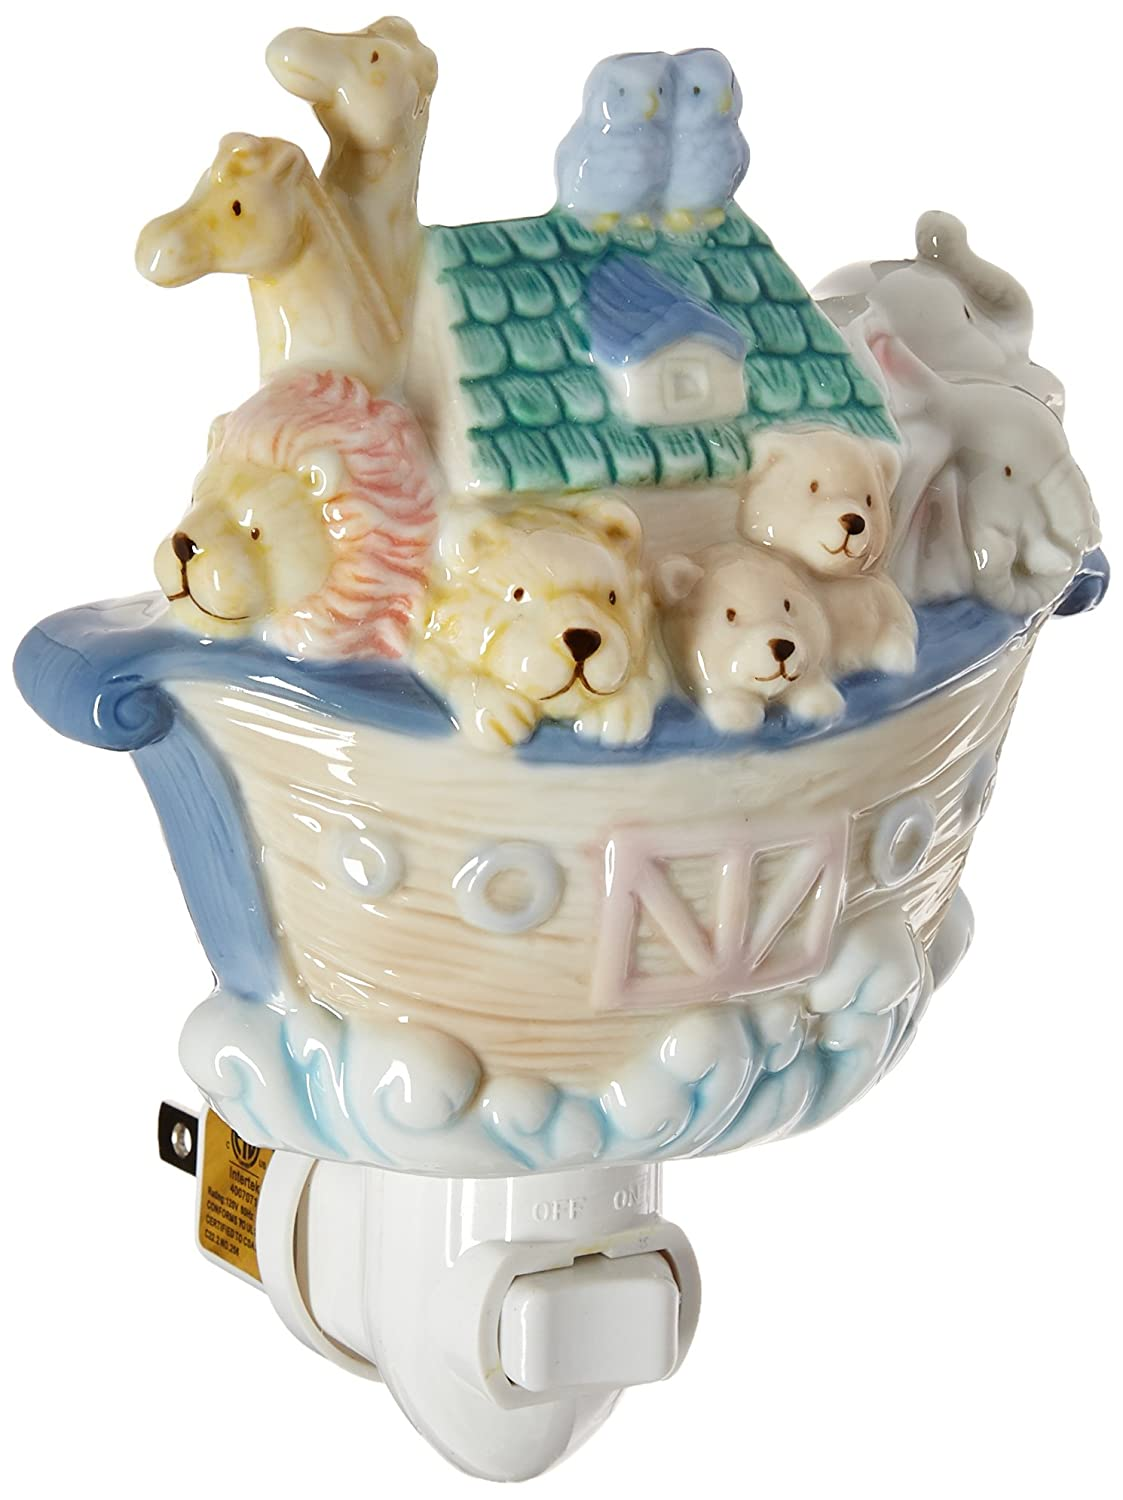 Cosmos 5653 Fine Porcelain Noah's Ark Night Light, 5-1/2-Inch